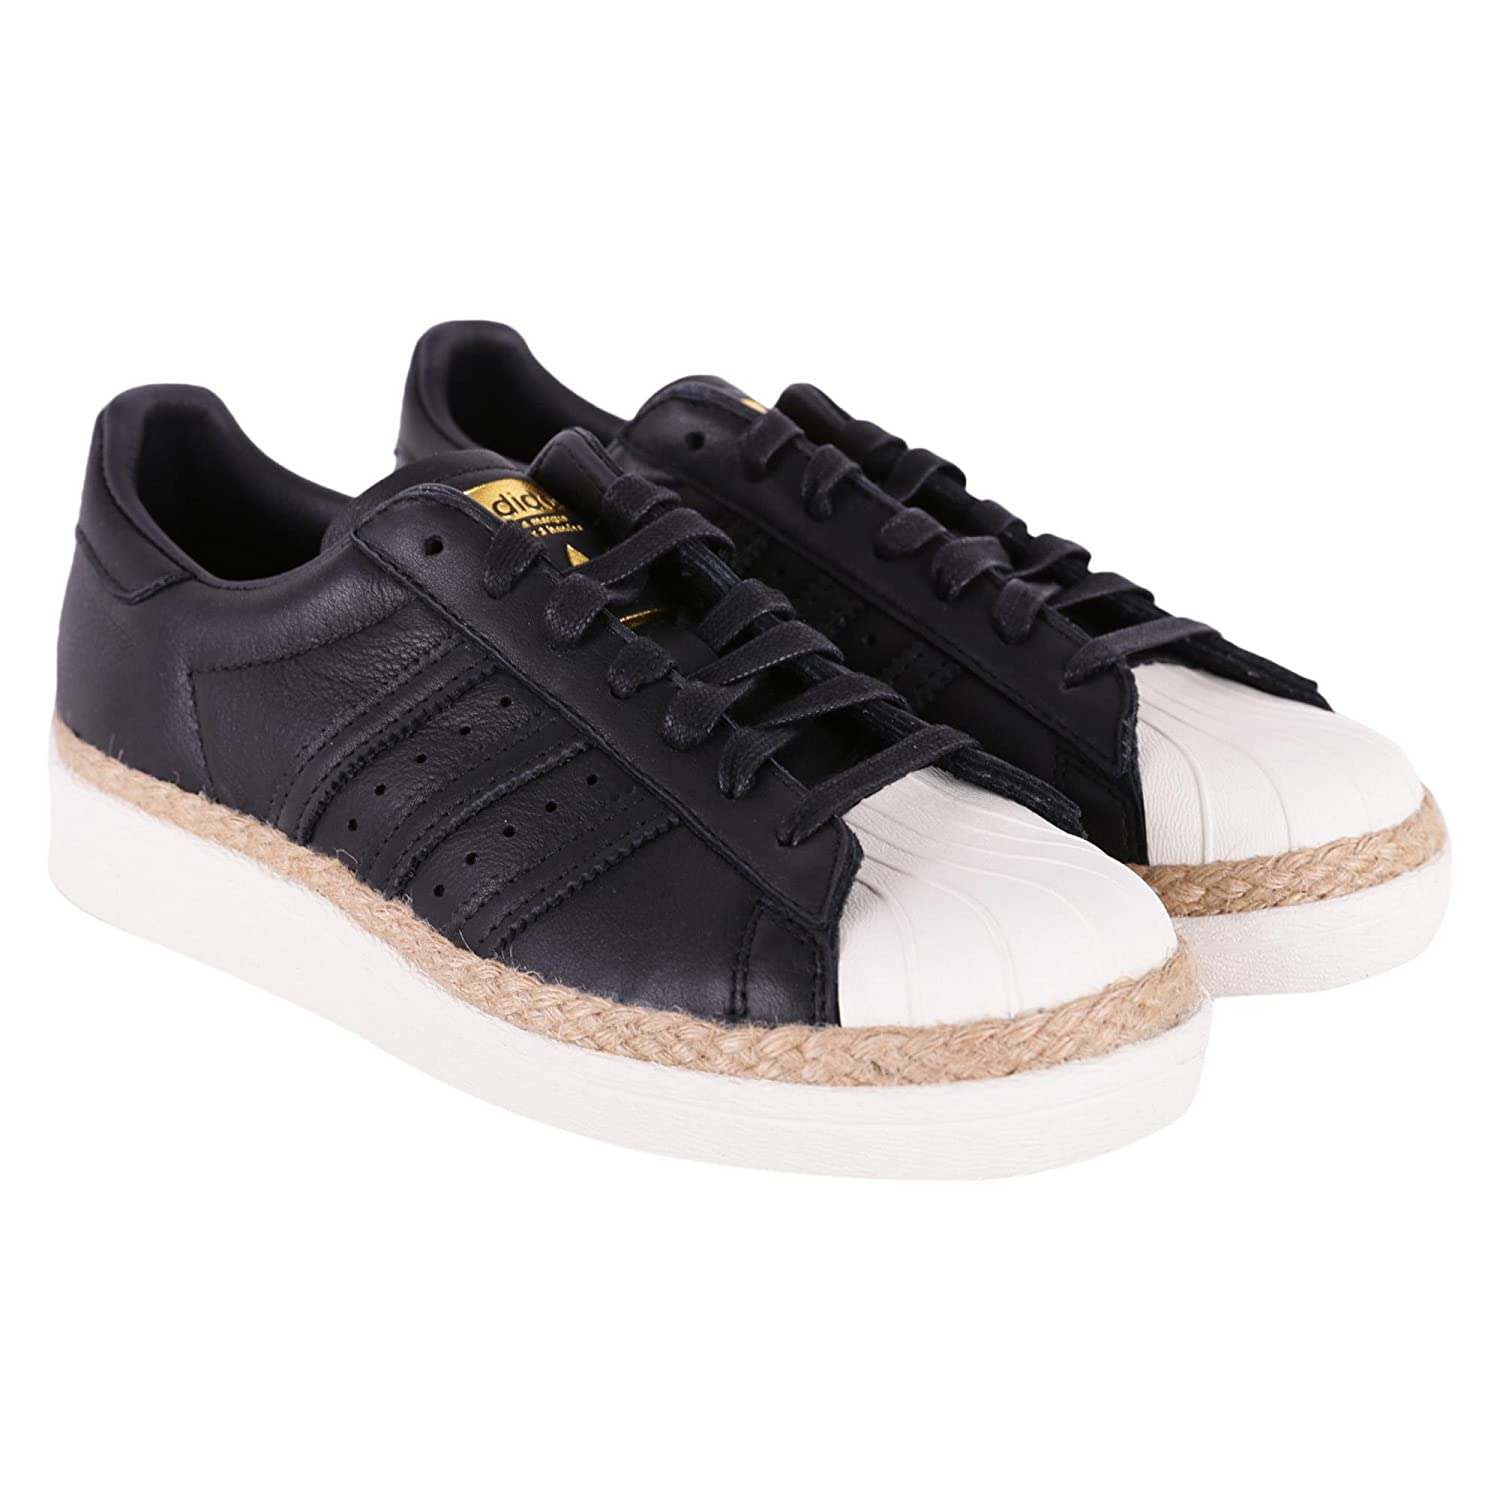 Amazon.com: adidas Superstar Shoes Women's: Shoes